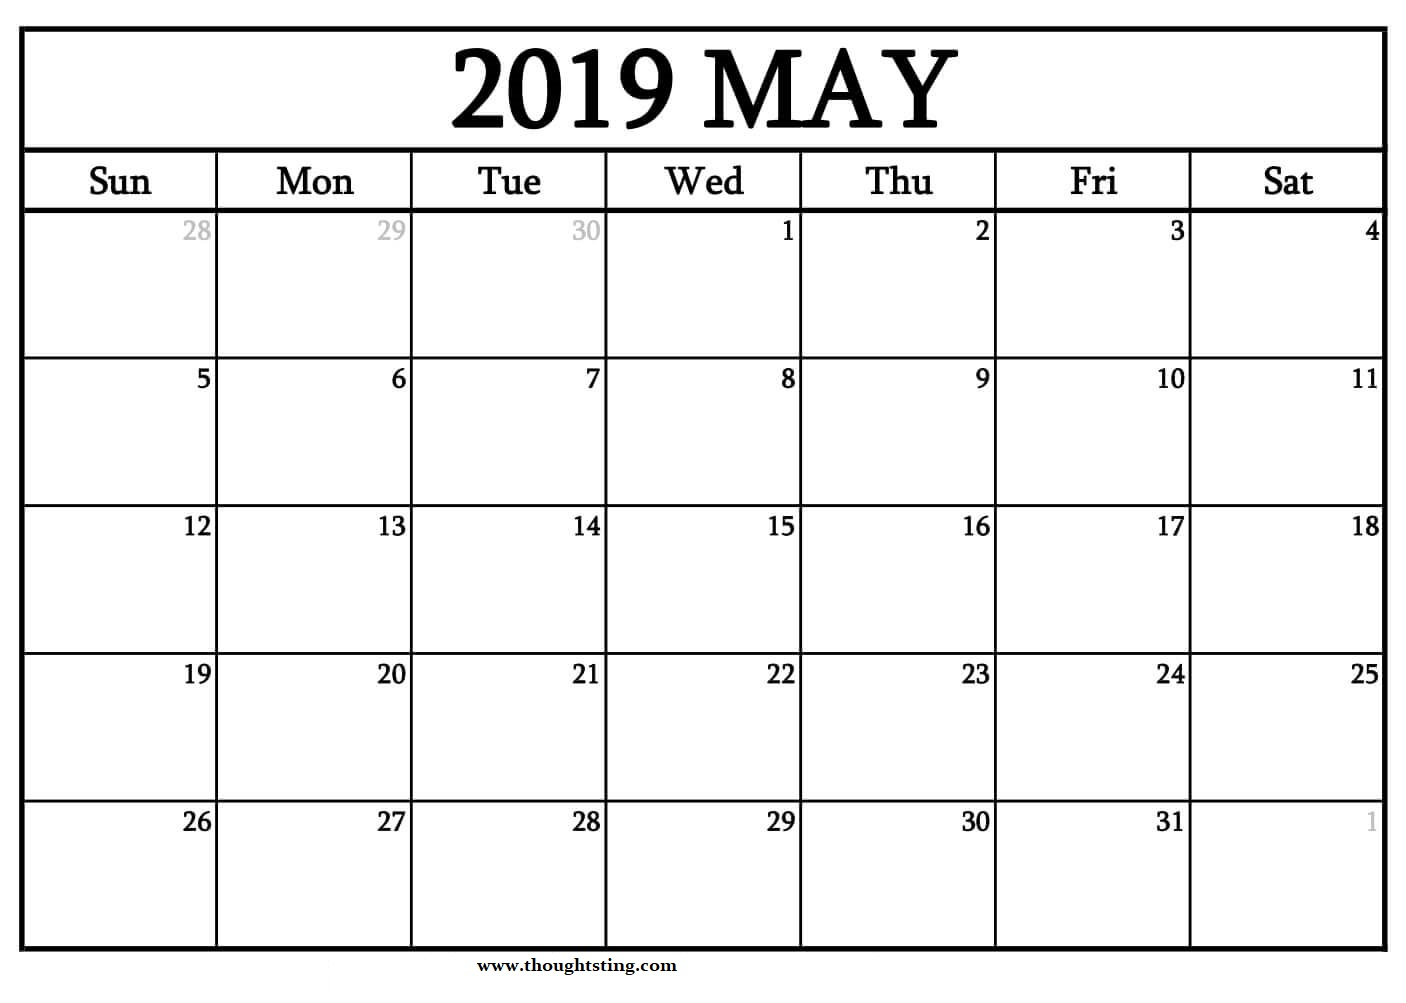 Free Printable May 2019 Calendar Template Word And Excel - Free with regard to Blank Calendar Template Excel